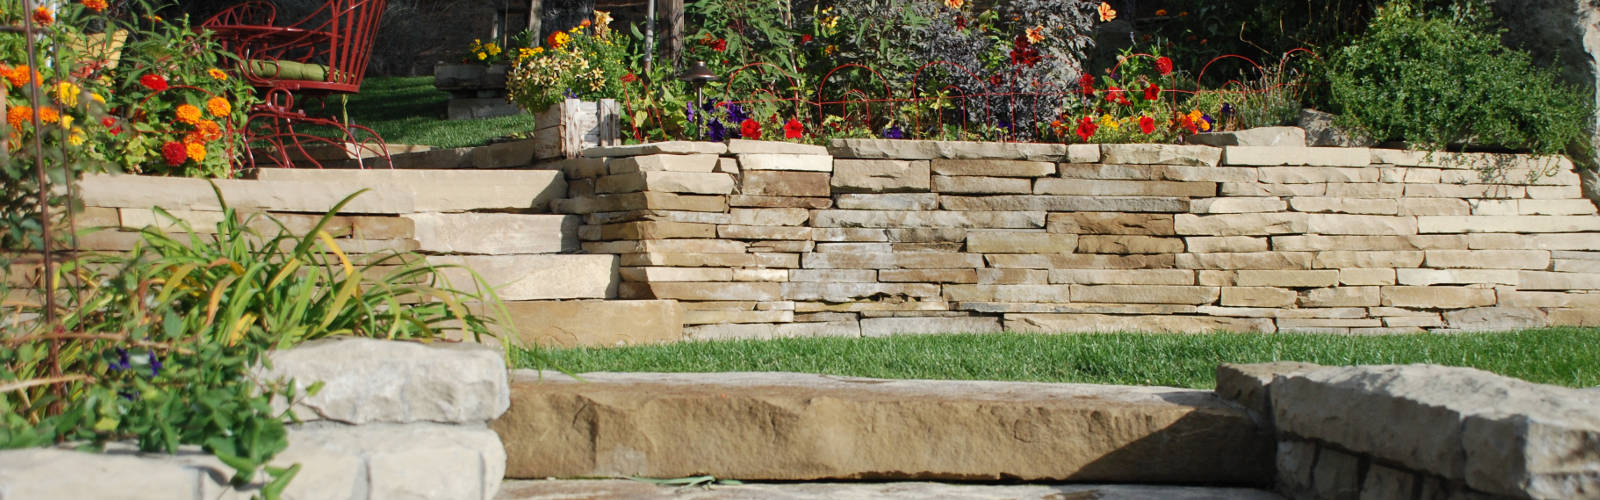 Stairs and rock walls. Image Jerry Anderberg & Associates Landscaping and Nursery